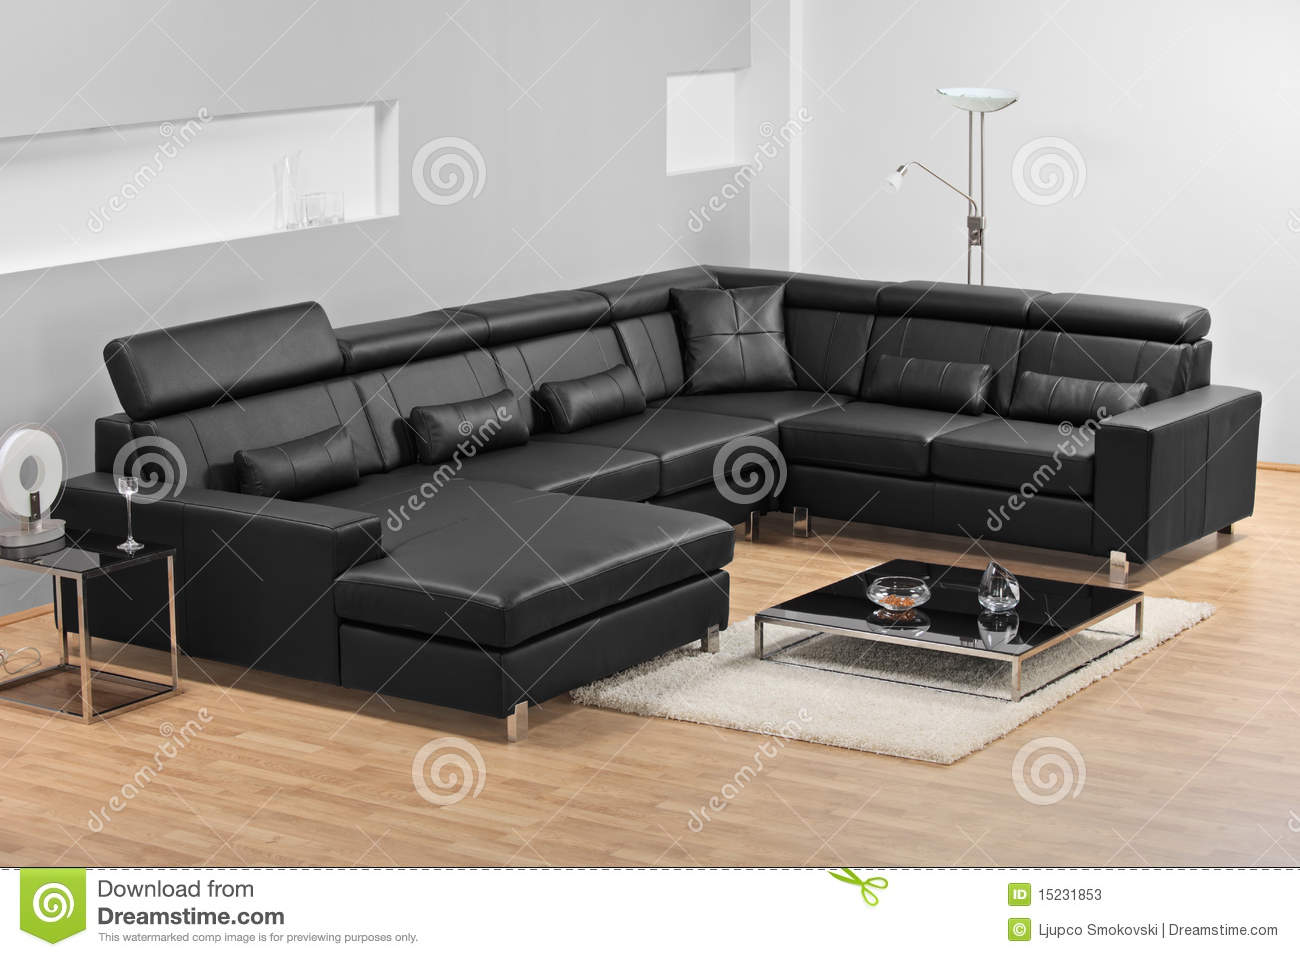 A Modern Minimalist Living Room With Leather Sofa Stock